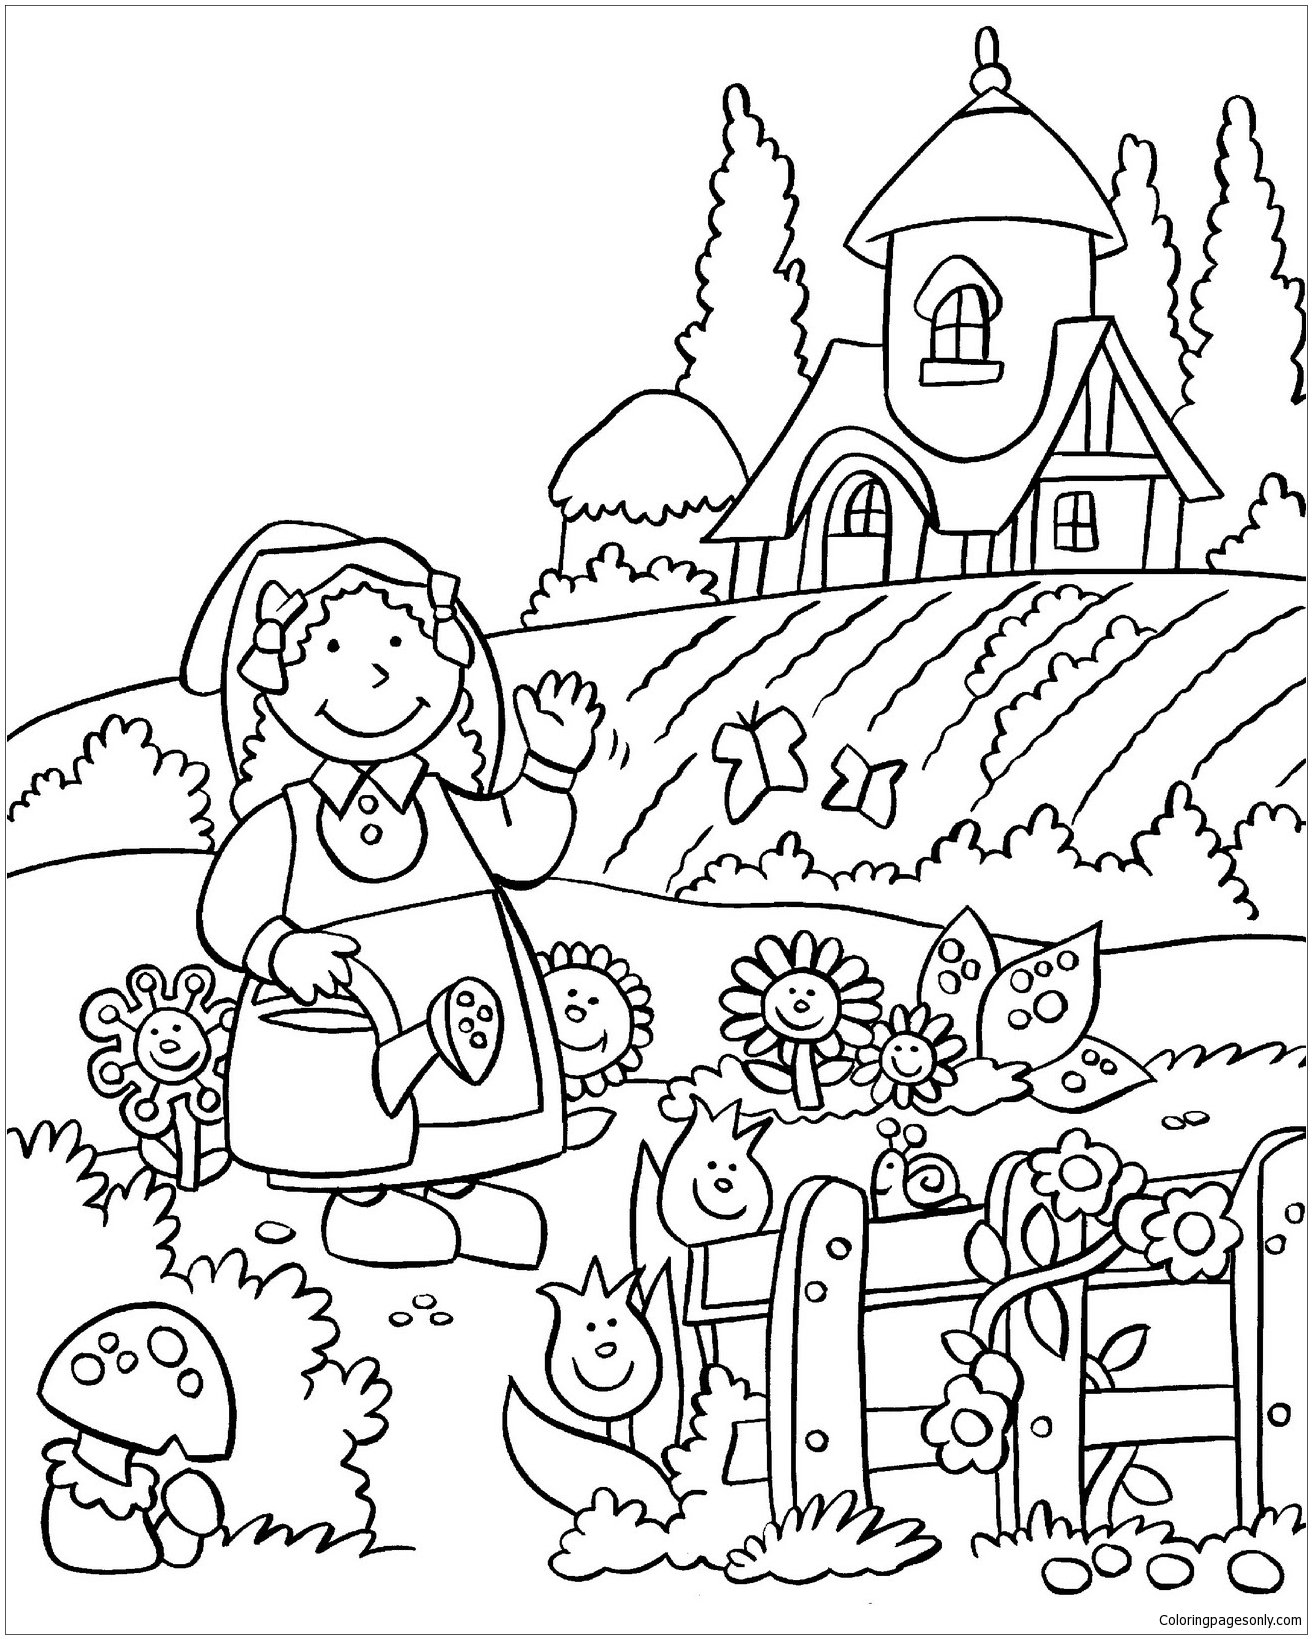 The Beautiful Flower Garden Coloring Page Free Coloring Pages Online